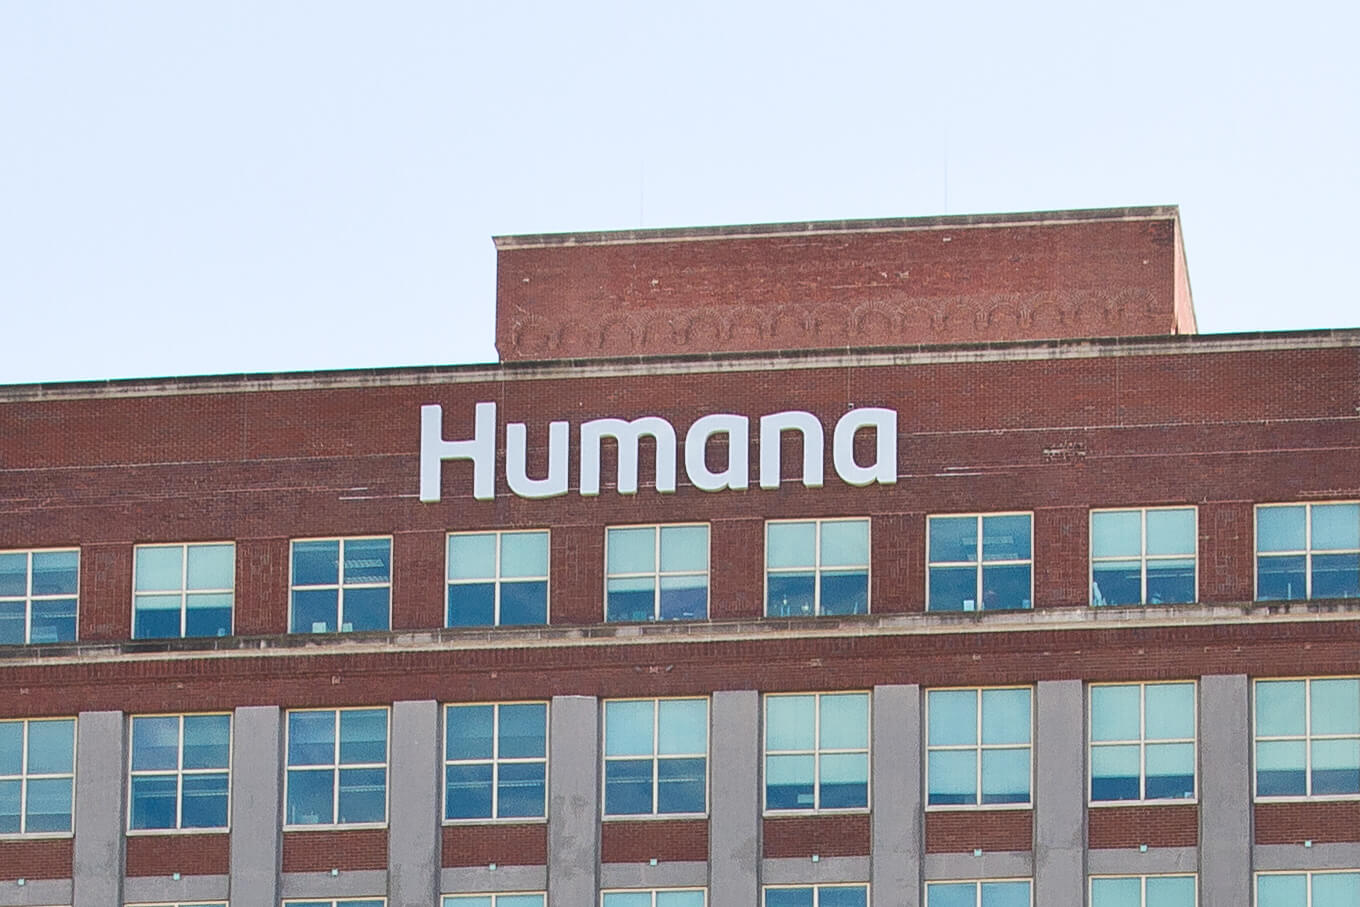 Humana saved $4B from value-based care programs last year